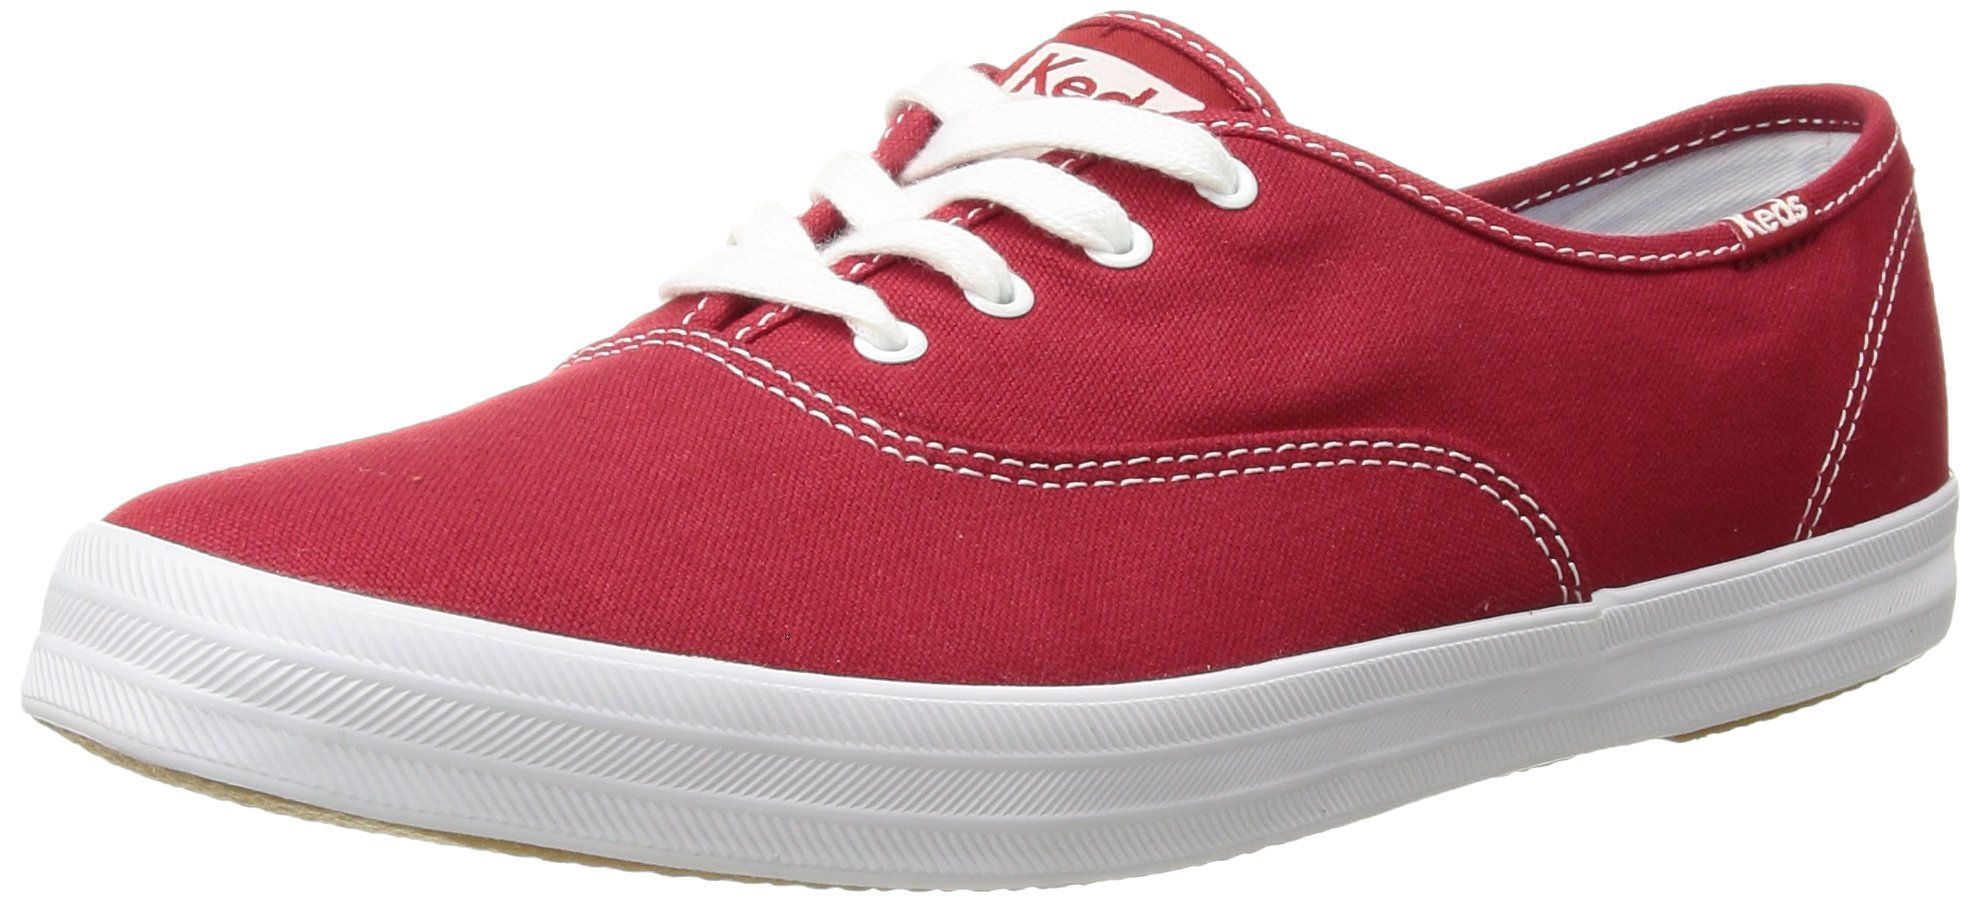 Keds Champion - Red Low-Profile Canvas Sneaker - Size: 10